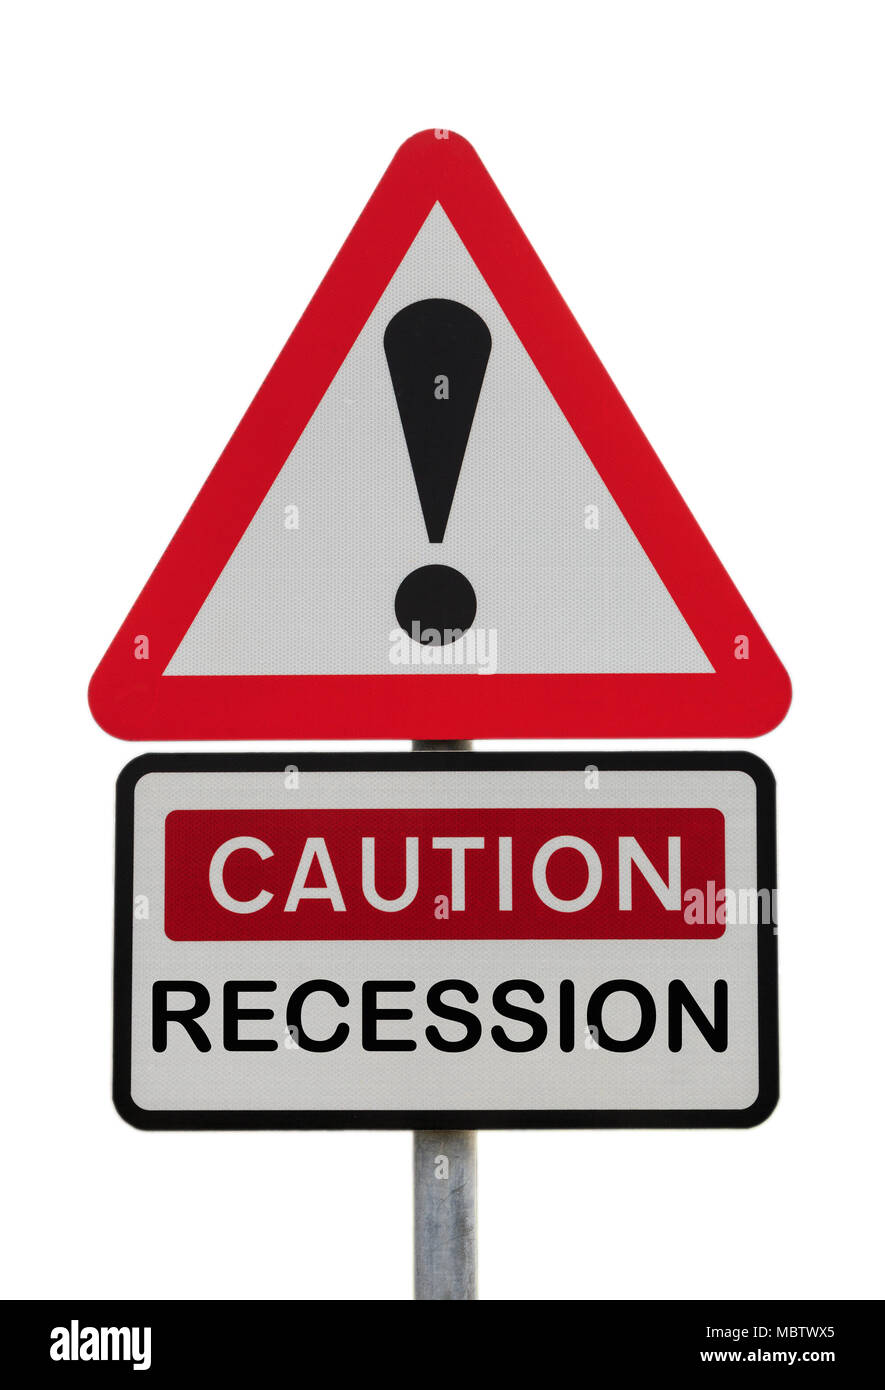 Triangular sign warning Caution Recession with exclamation mark to illustrate financial future concept. UK, Britain, Europe - Stock Image